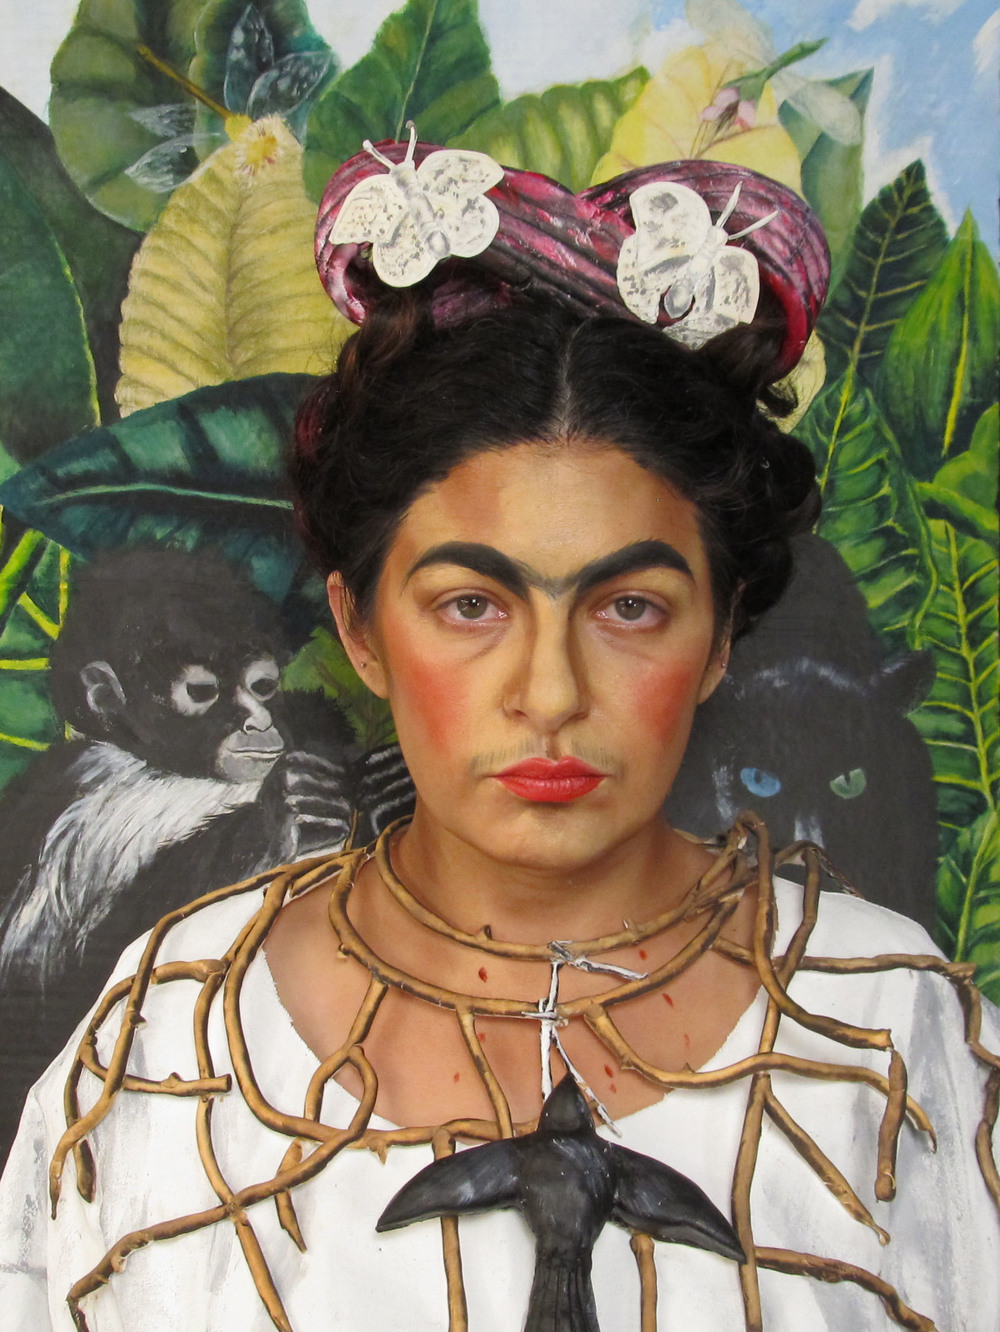 3D painting interpretation of Frida Kahlo's Self Portrait with Thorn Necklace and Hummingbird.